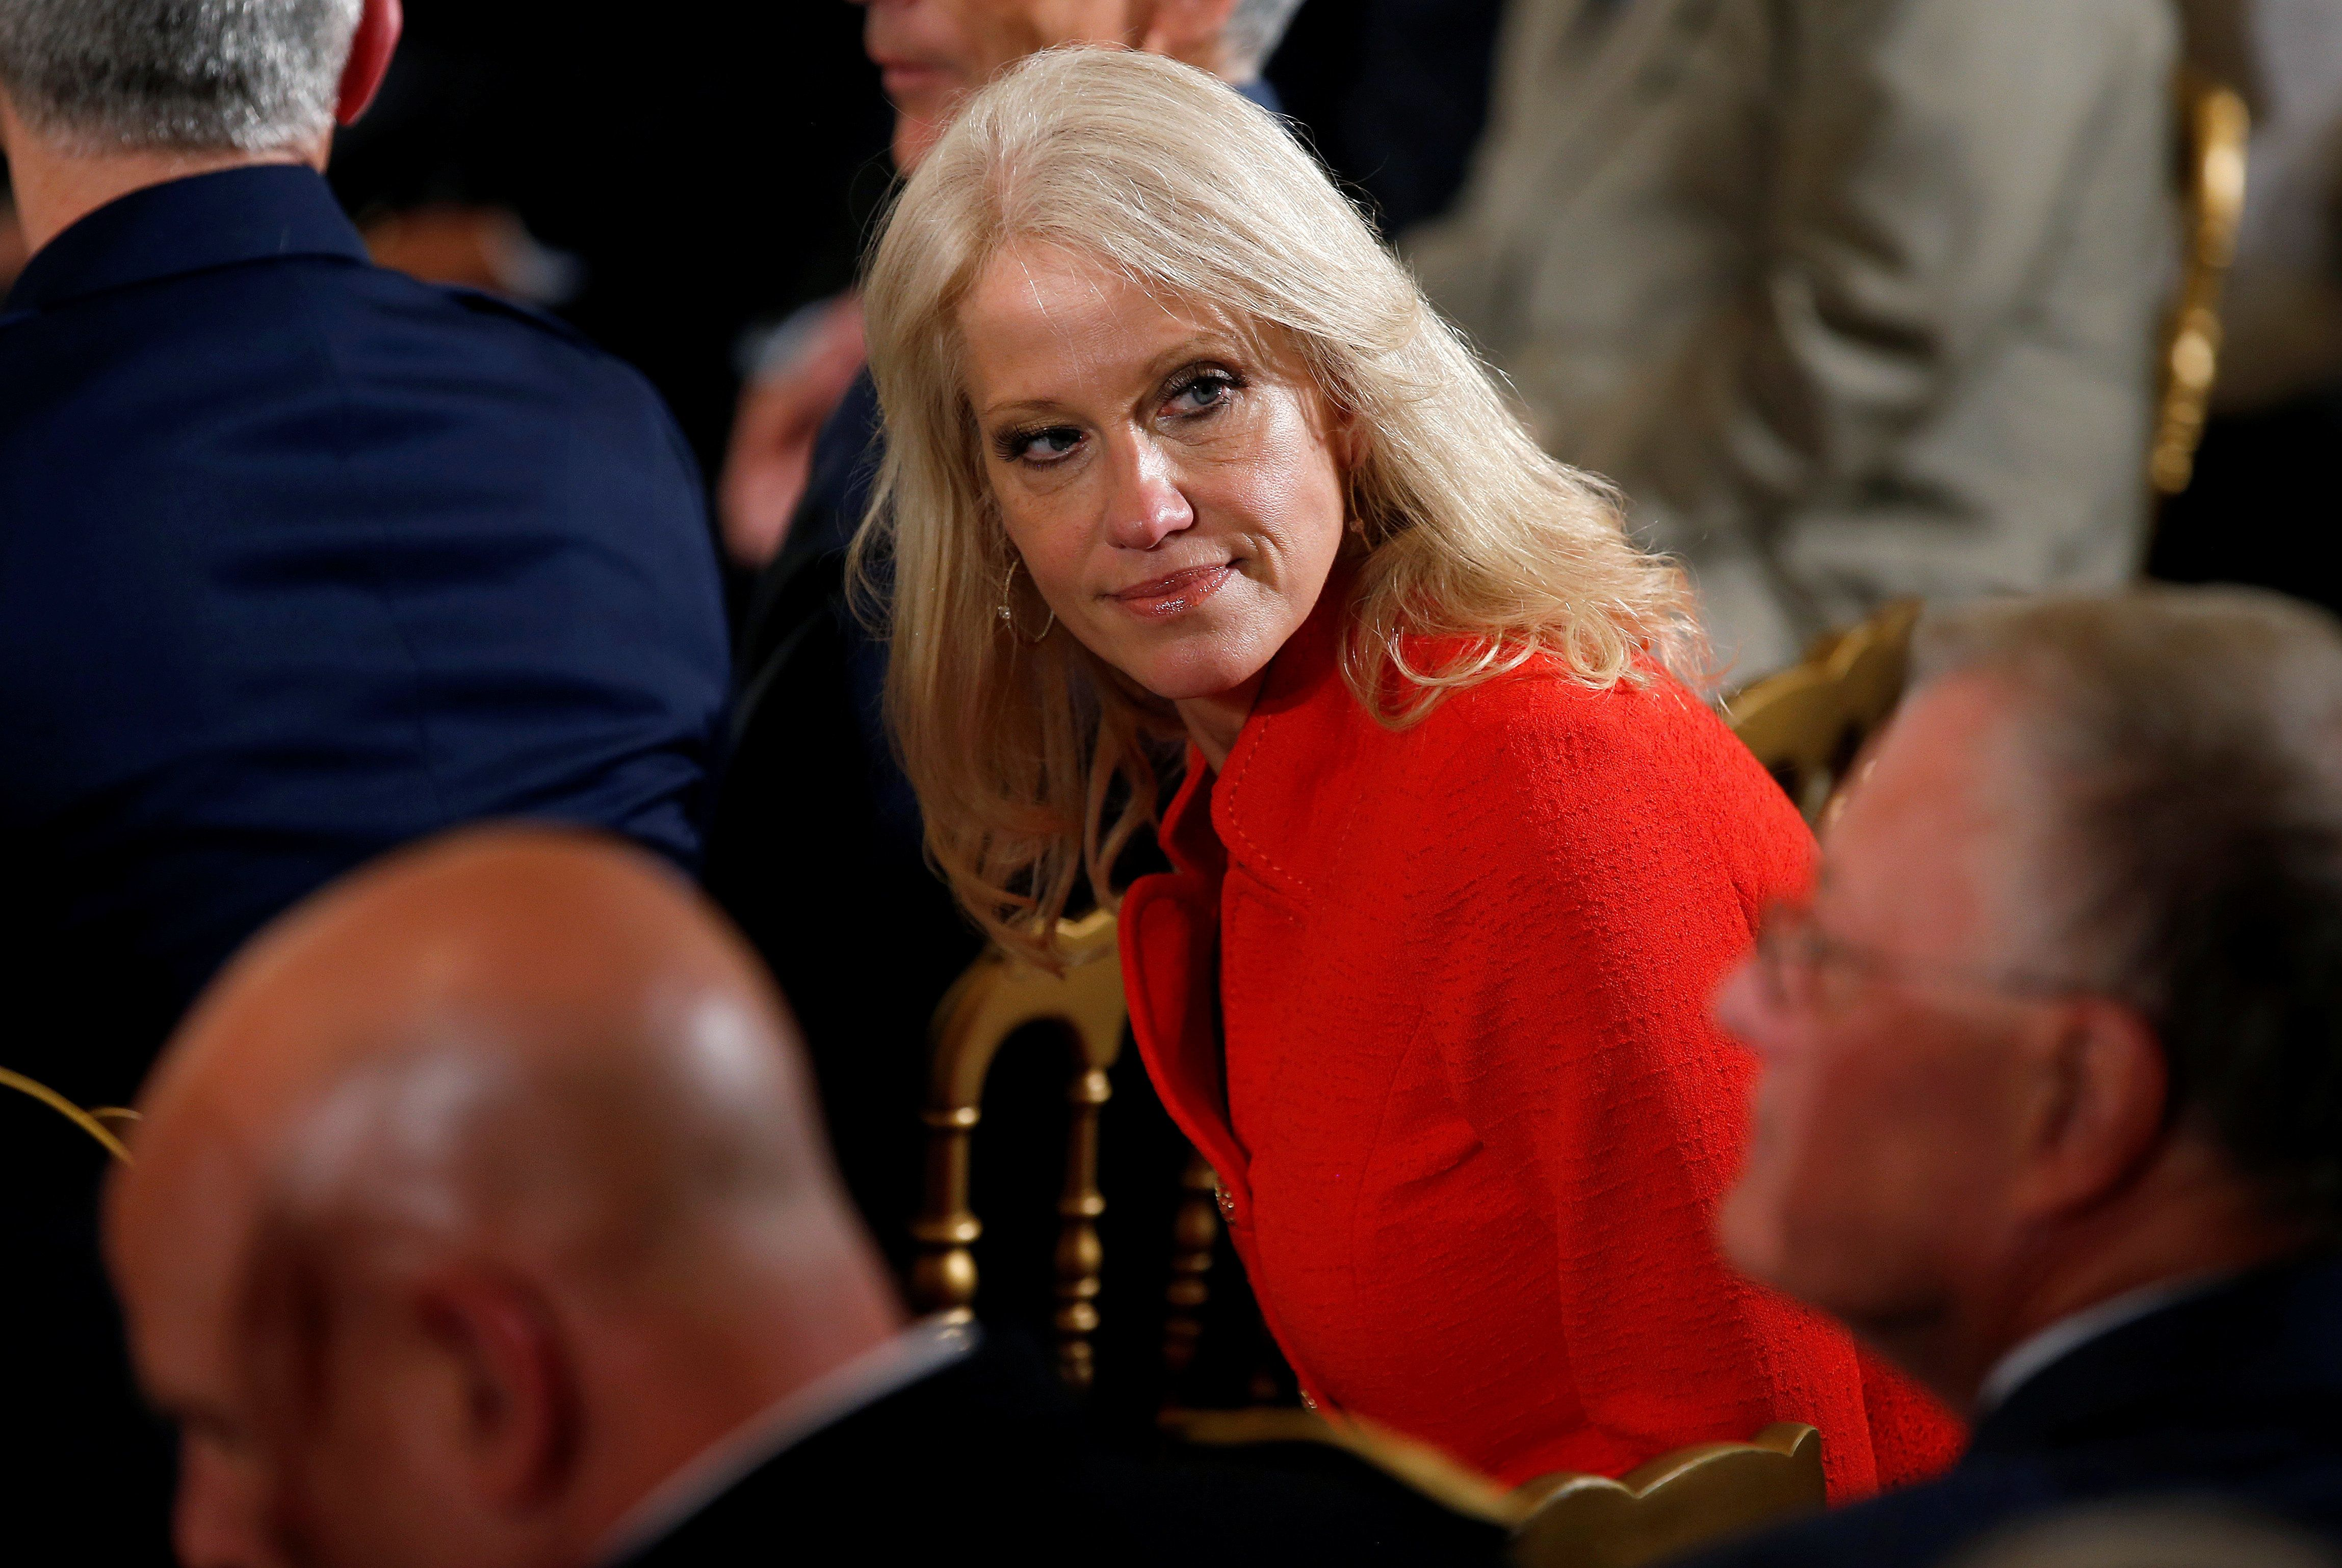 Kellyanne Conway is lambasting those criticizing Donald Trump for telling a combat widow her husband knew what he was getting into